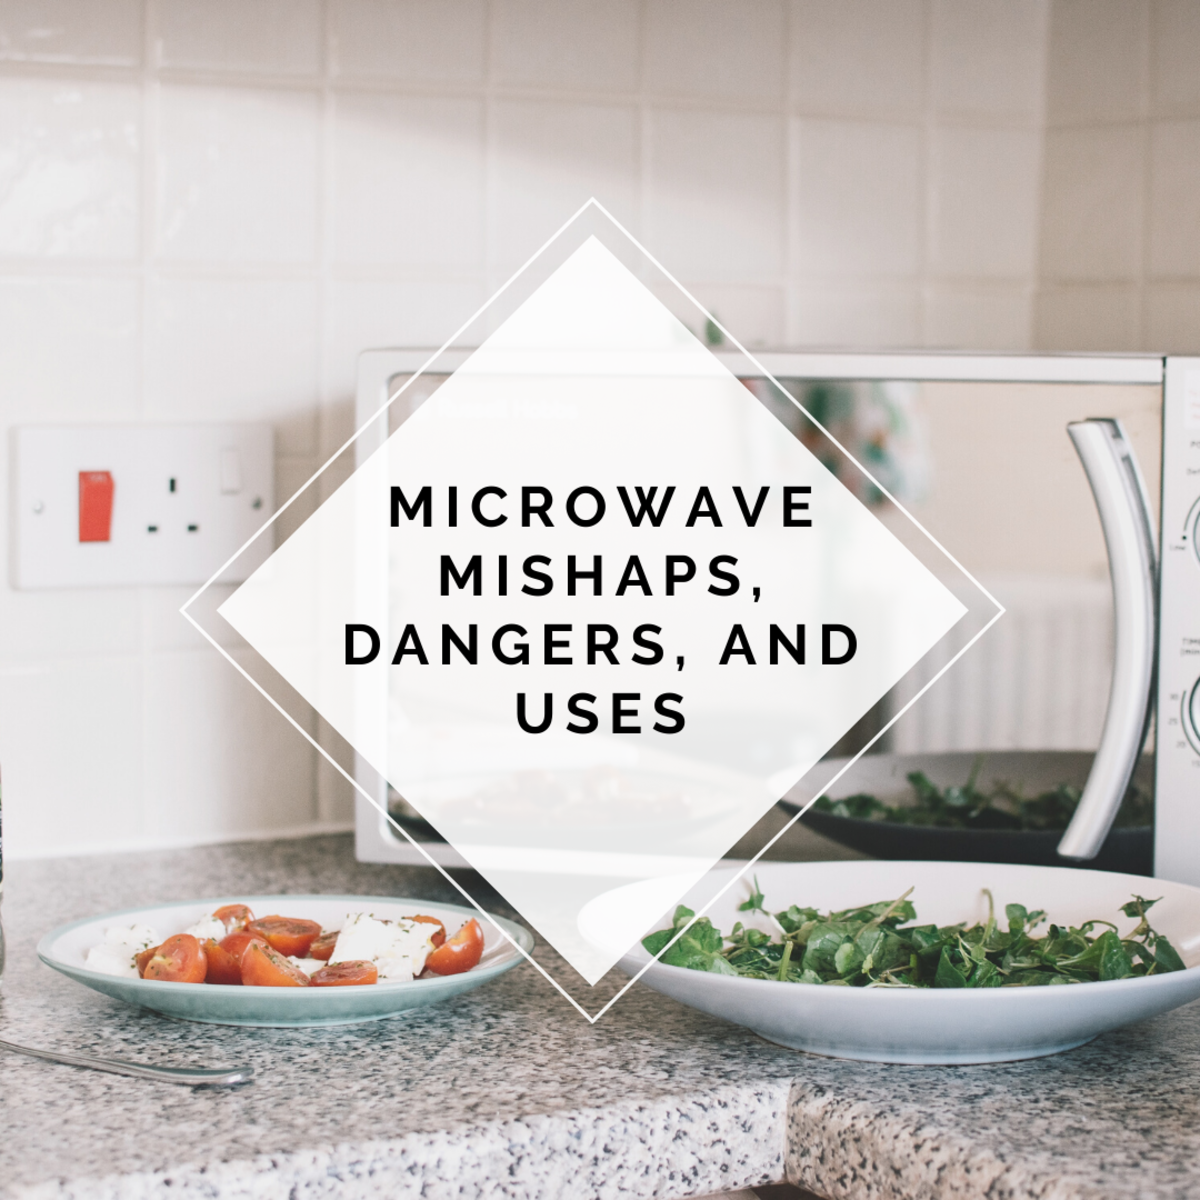 Old Microwave Oven Dangers: Microwave Mishaps, Dangers, And Uses